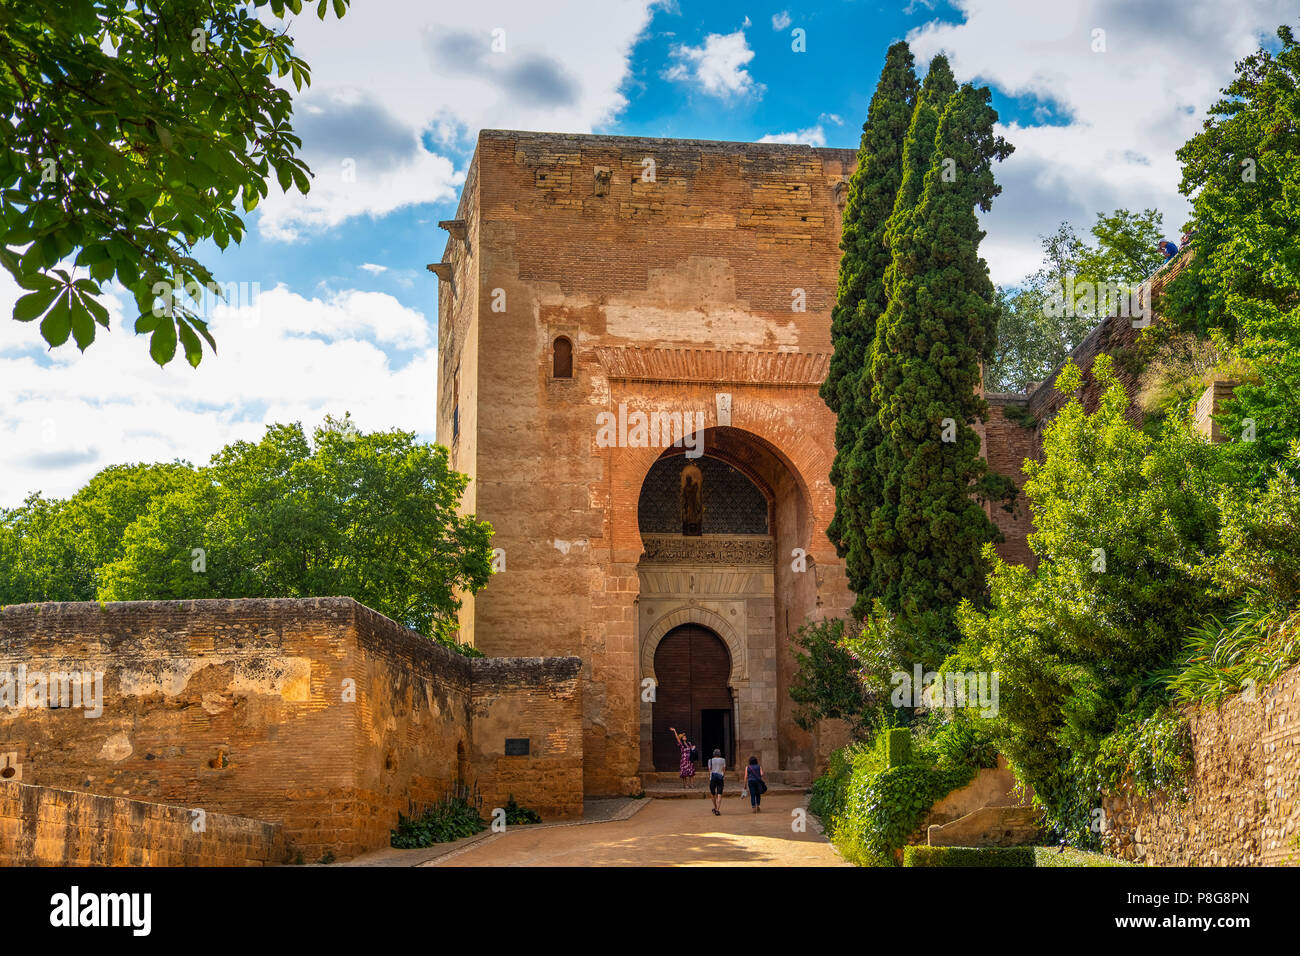 Puerta de la Justicia. Gate of Justice. Alhambra, UNESCO World Heritage Site. Granada City. Andalusia, Southern Spain Europe Stock Photo